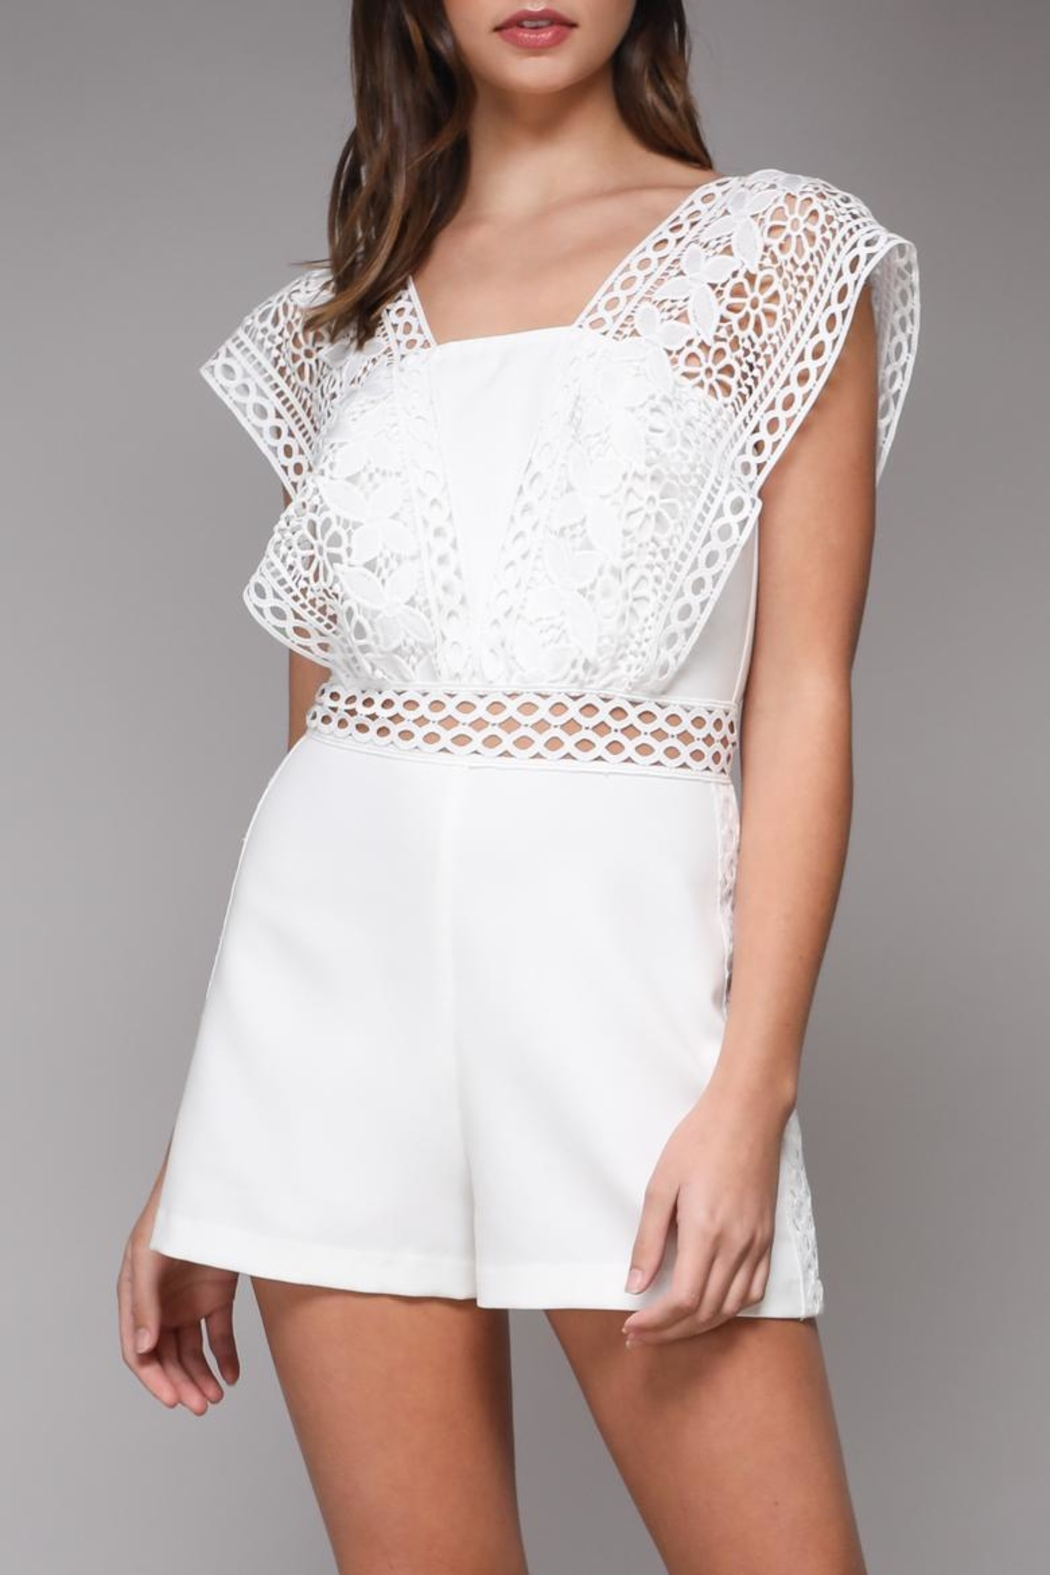 Do & Be Crochet Strap Romper - Main Image